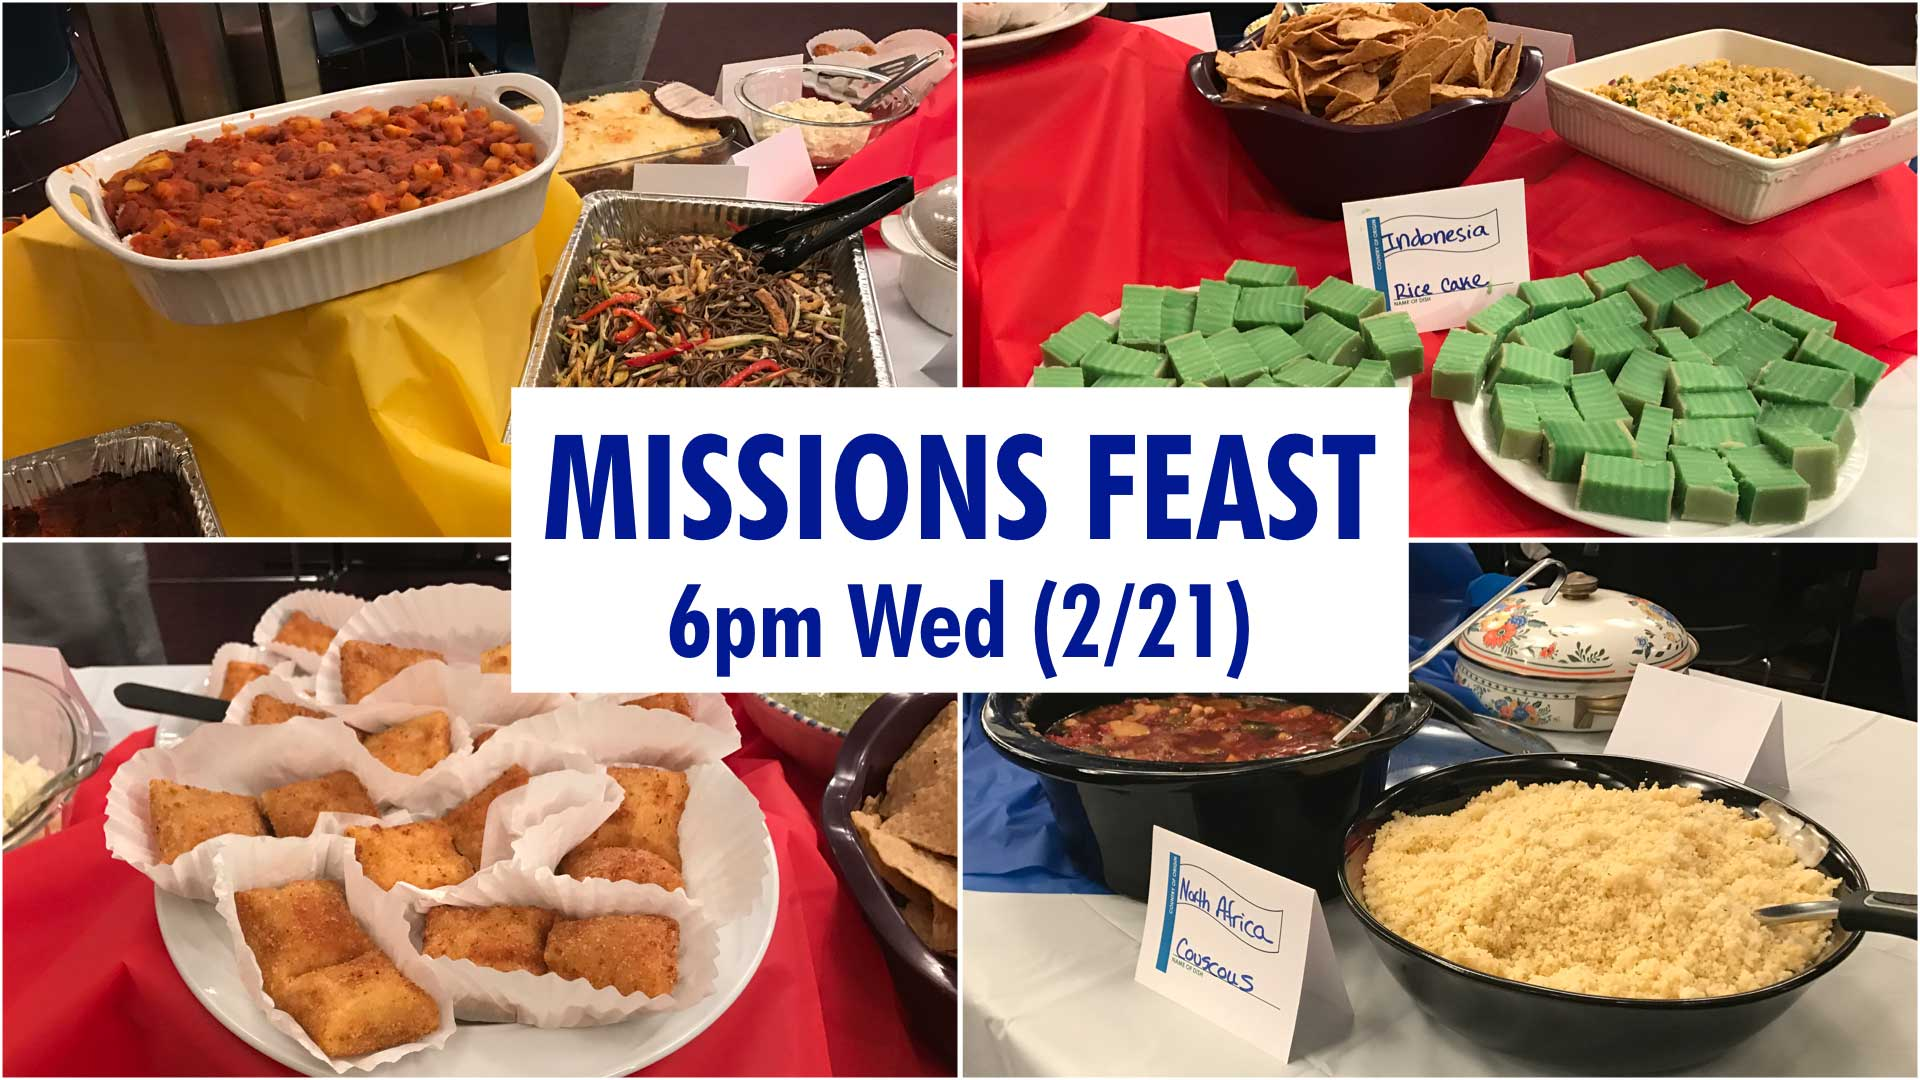 Missions Feast